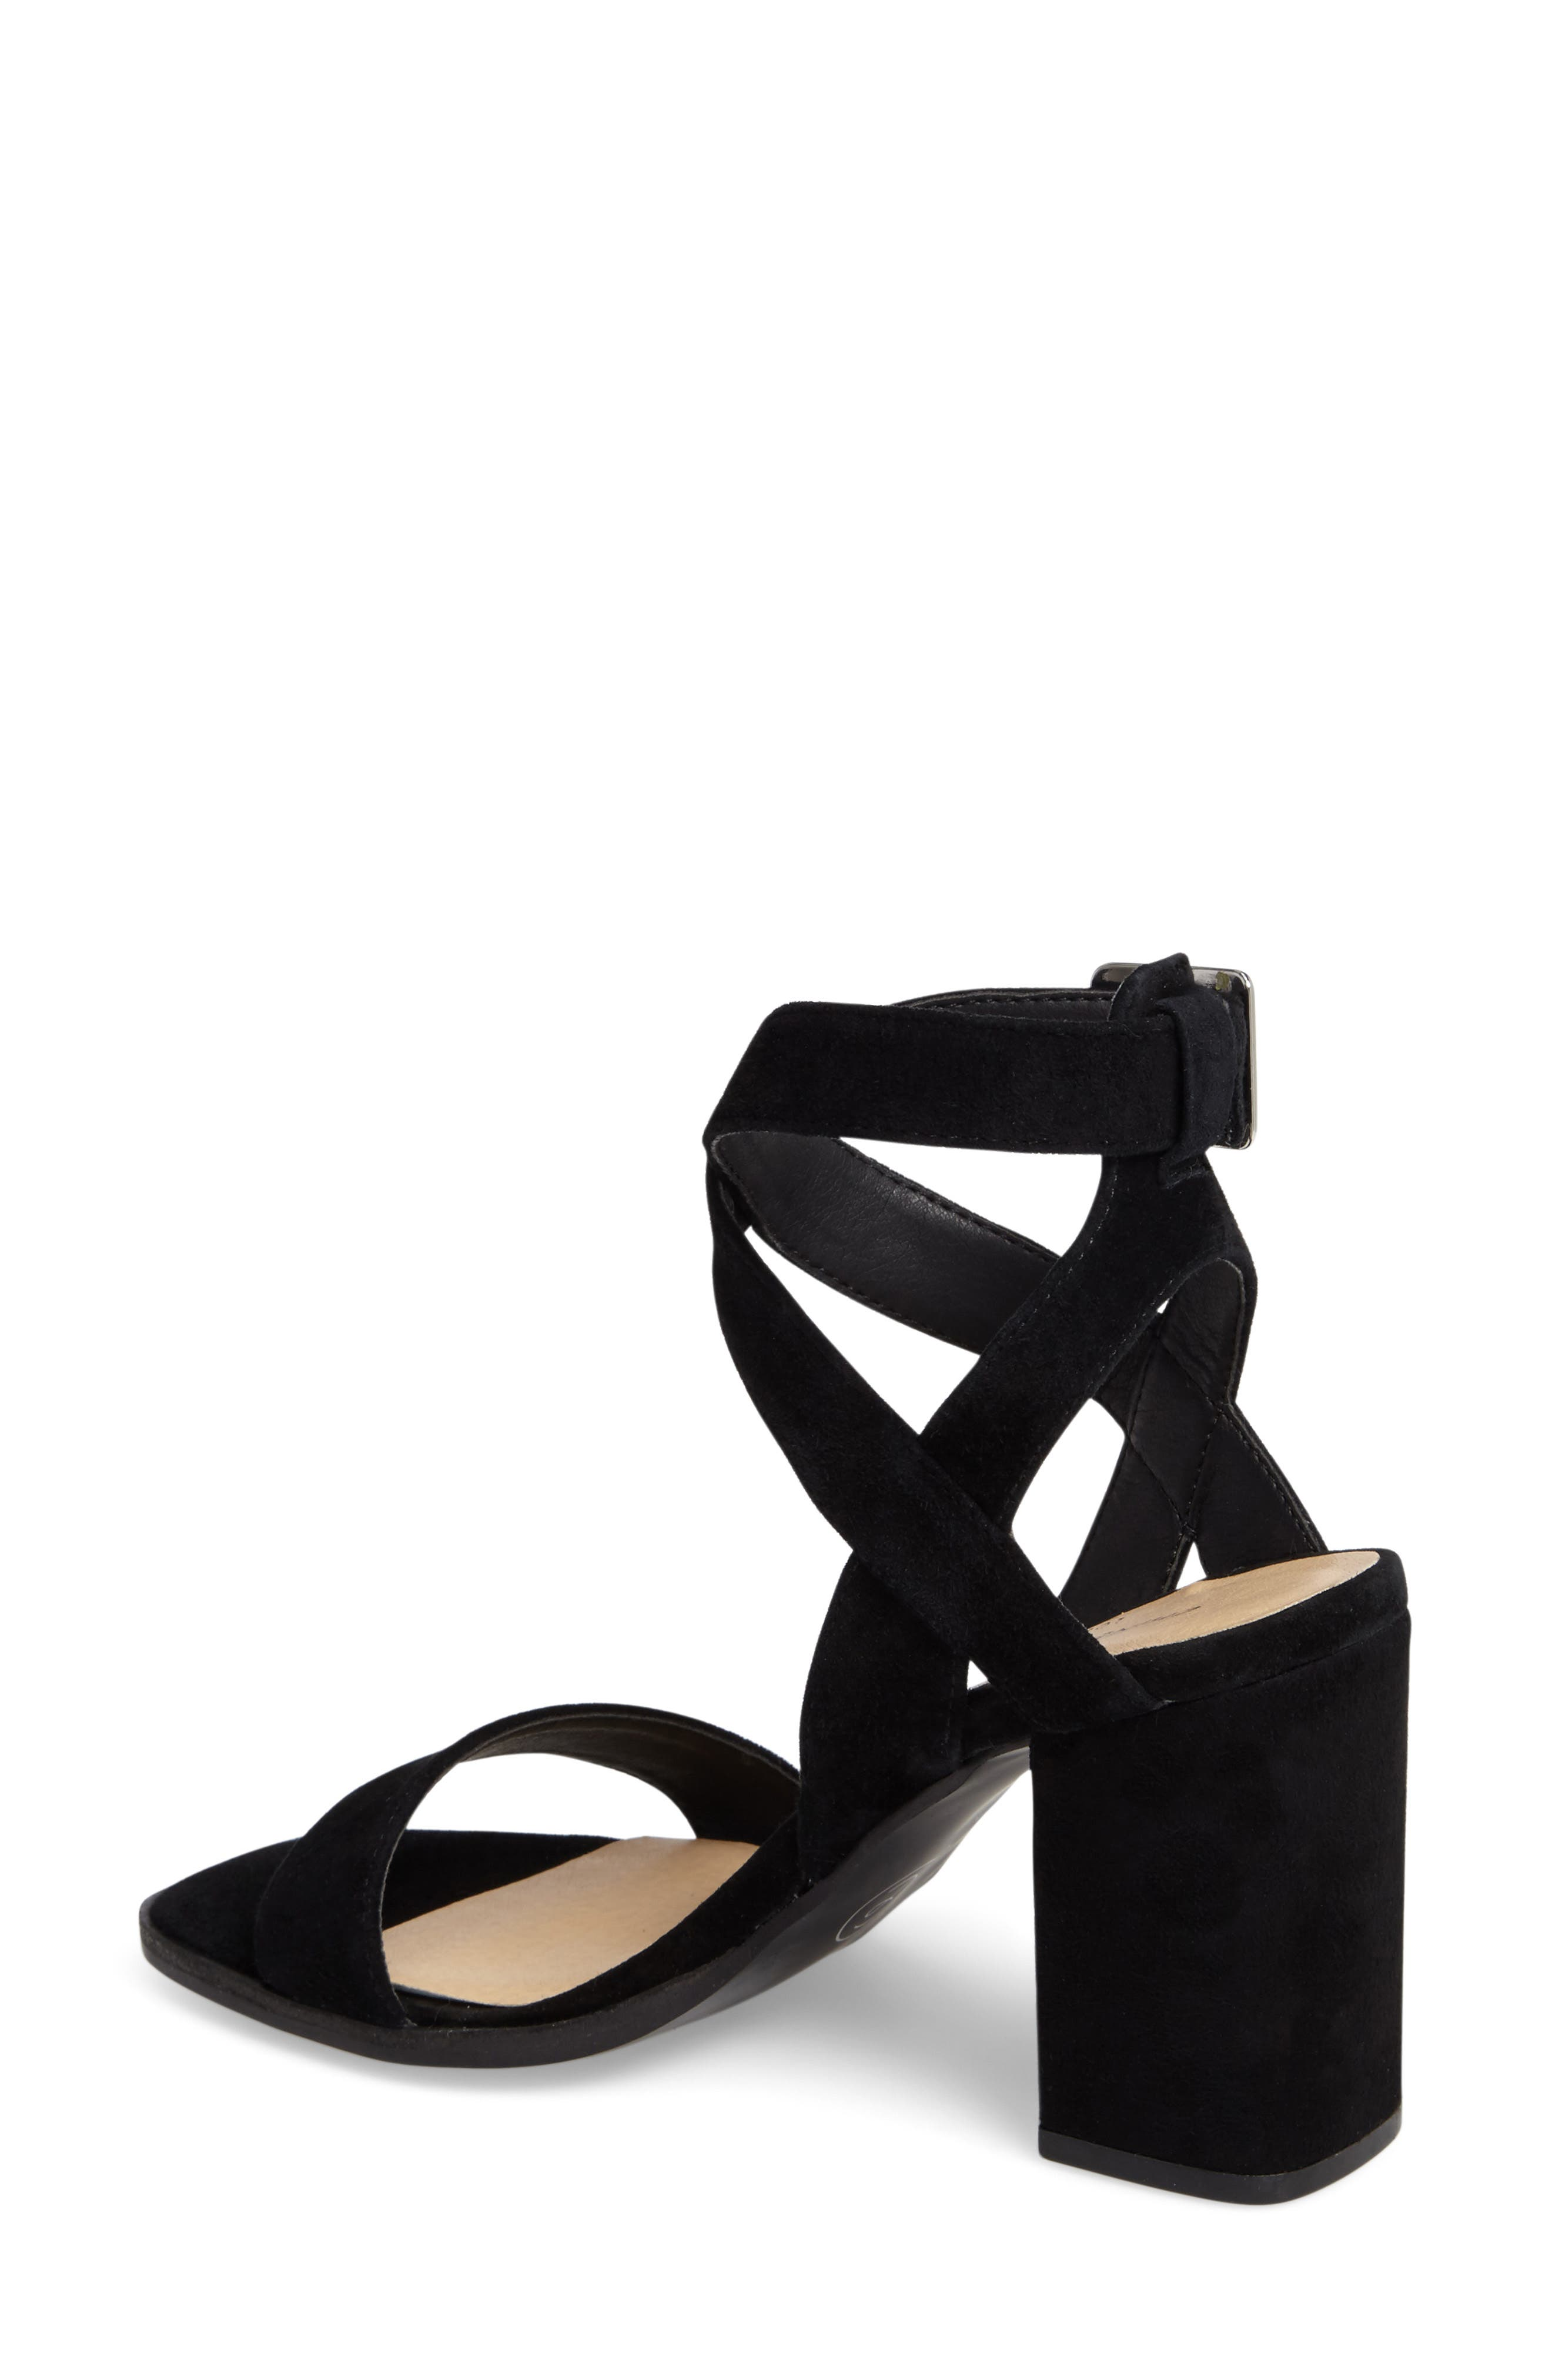 Sitara Ankle Strap Sandal,                             Alternate thumbnail 2, color,                             001